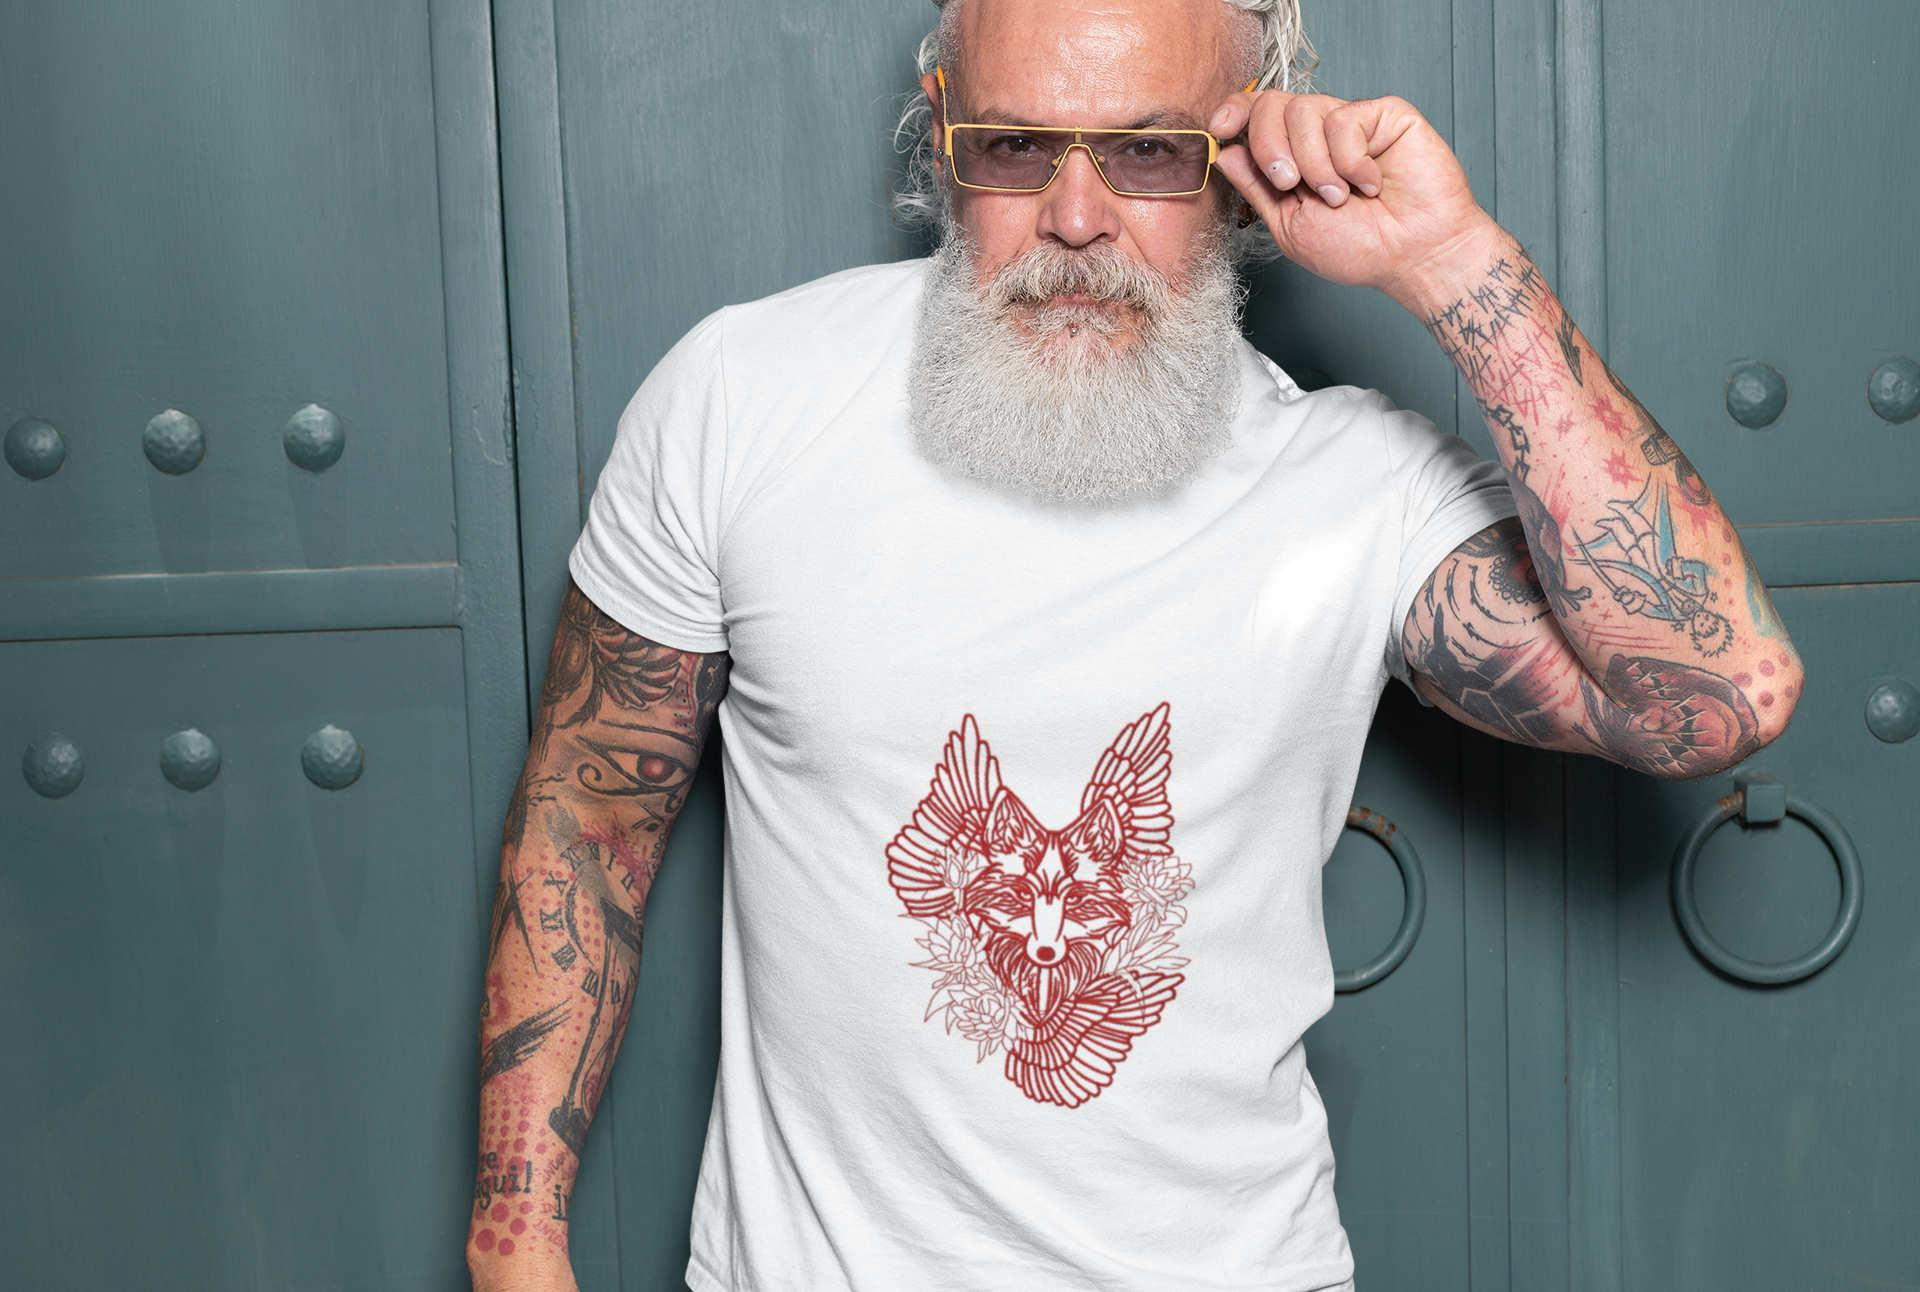 Embroidered t-shirt with Tribal wolf design